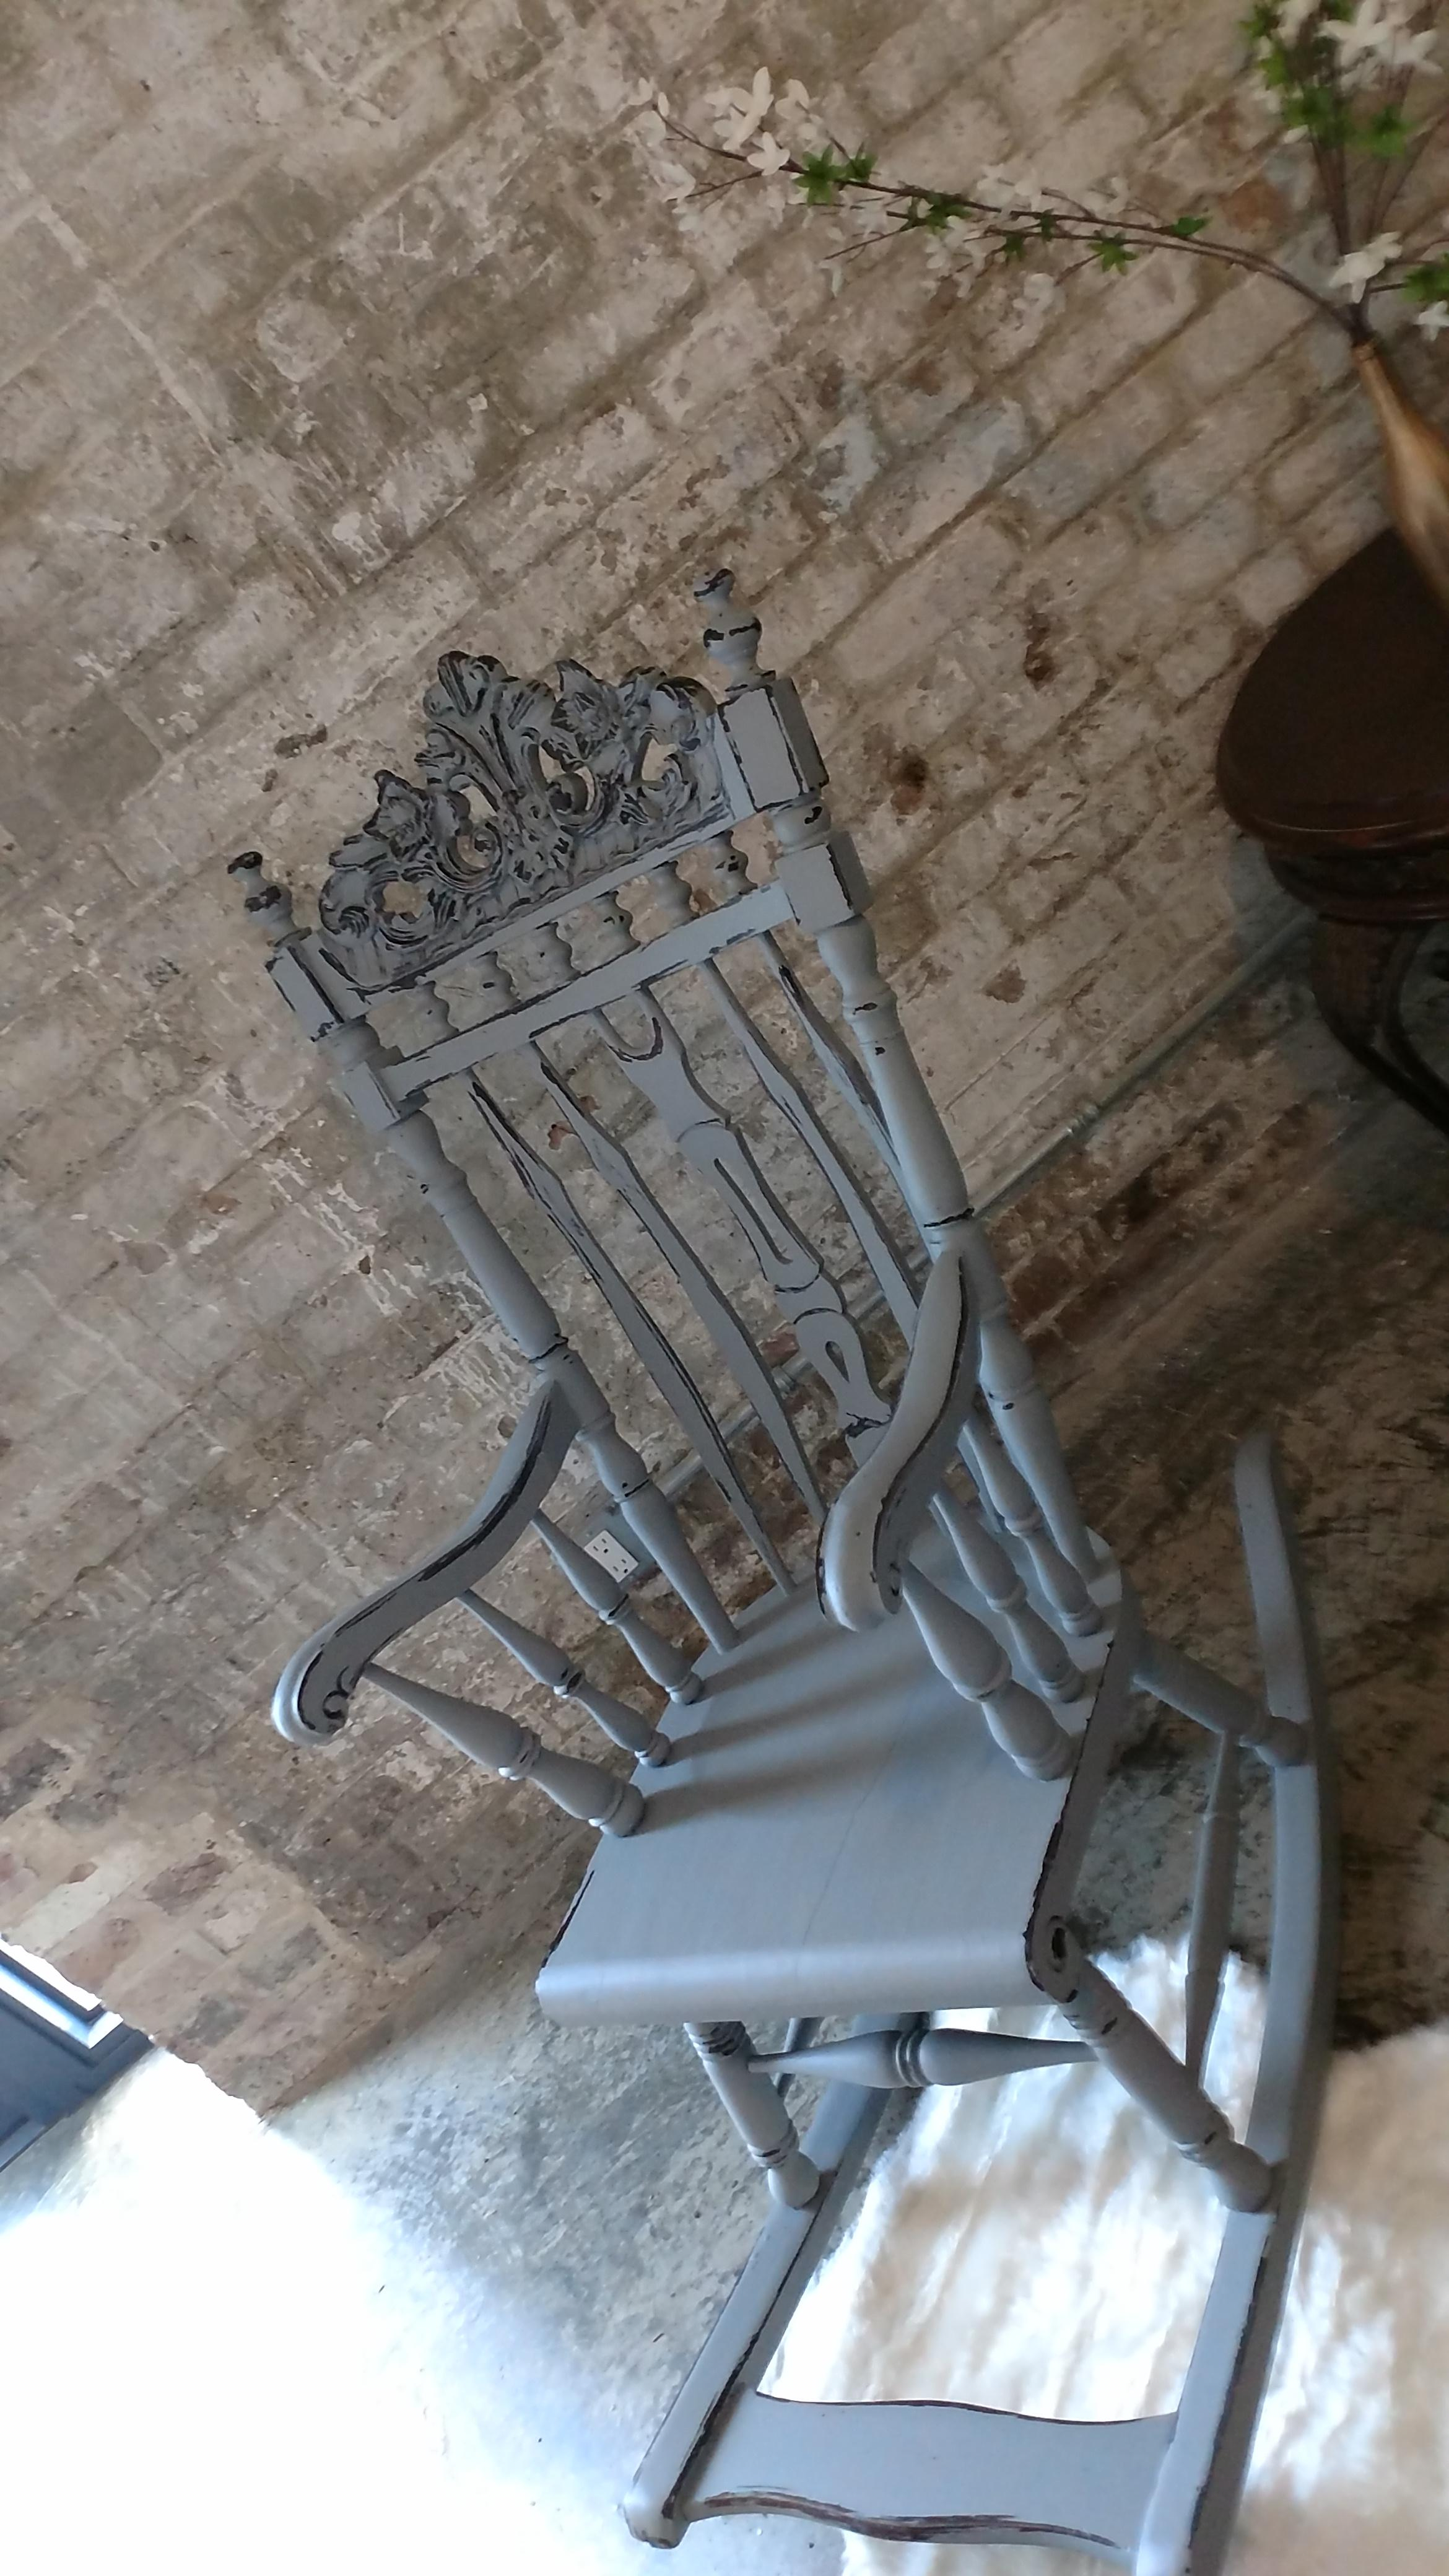 rocking chairs for nursery under 100 macrame lawn chair patterns antique with footrest | chairish